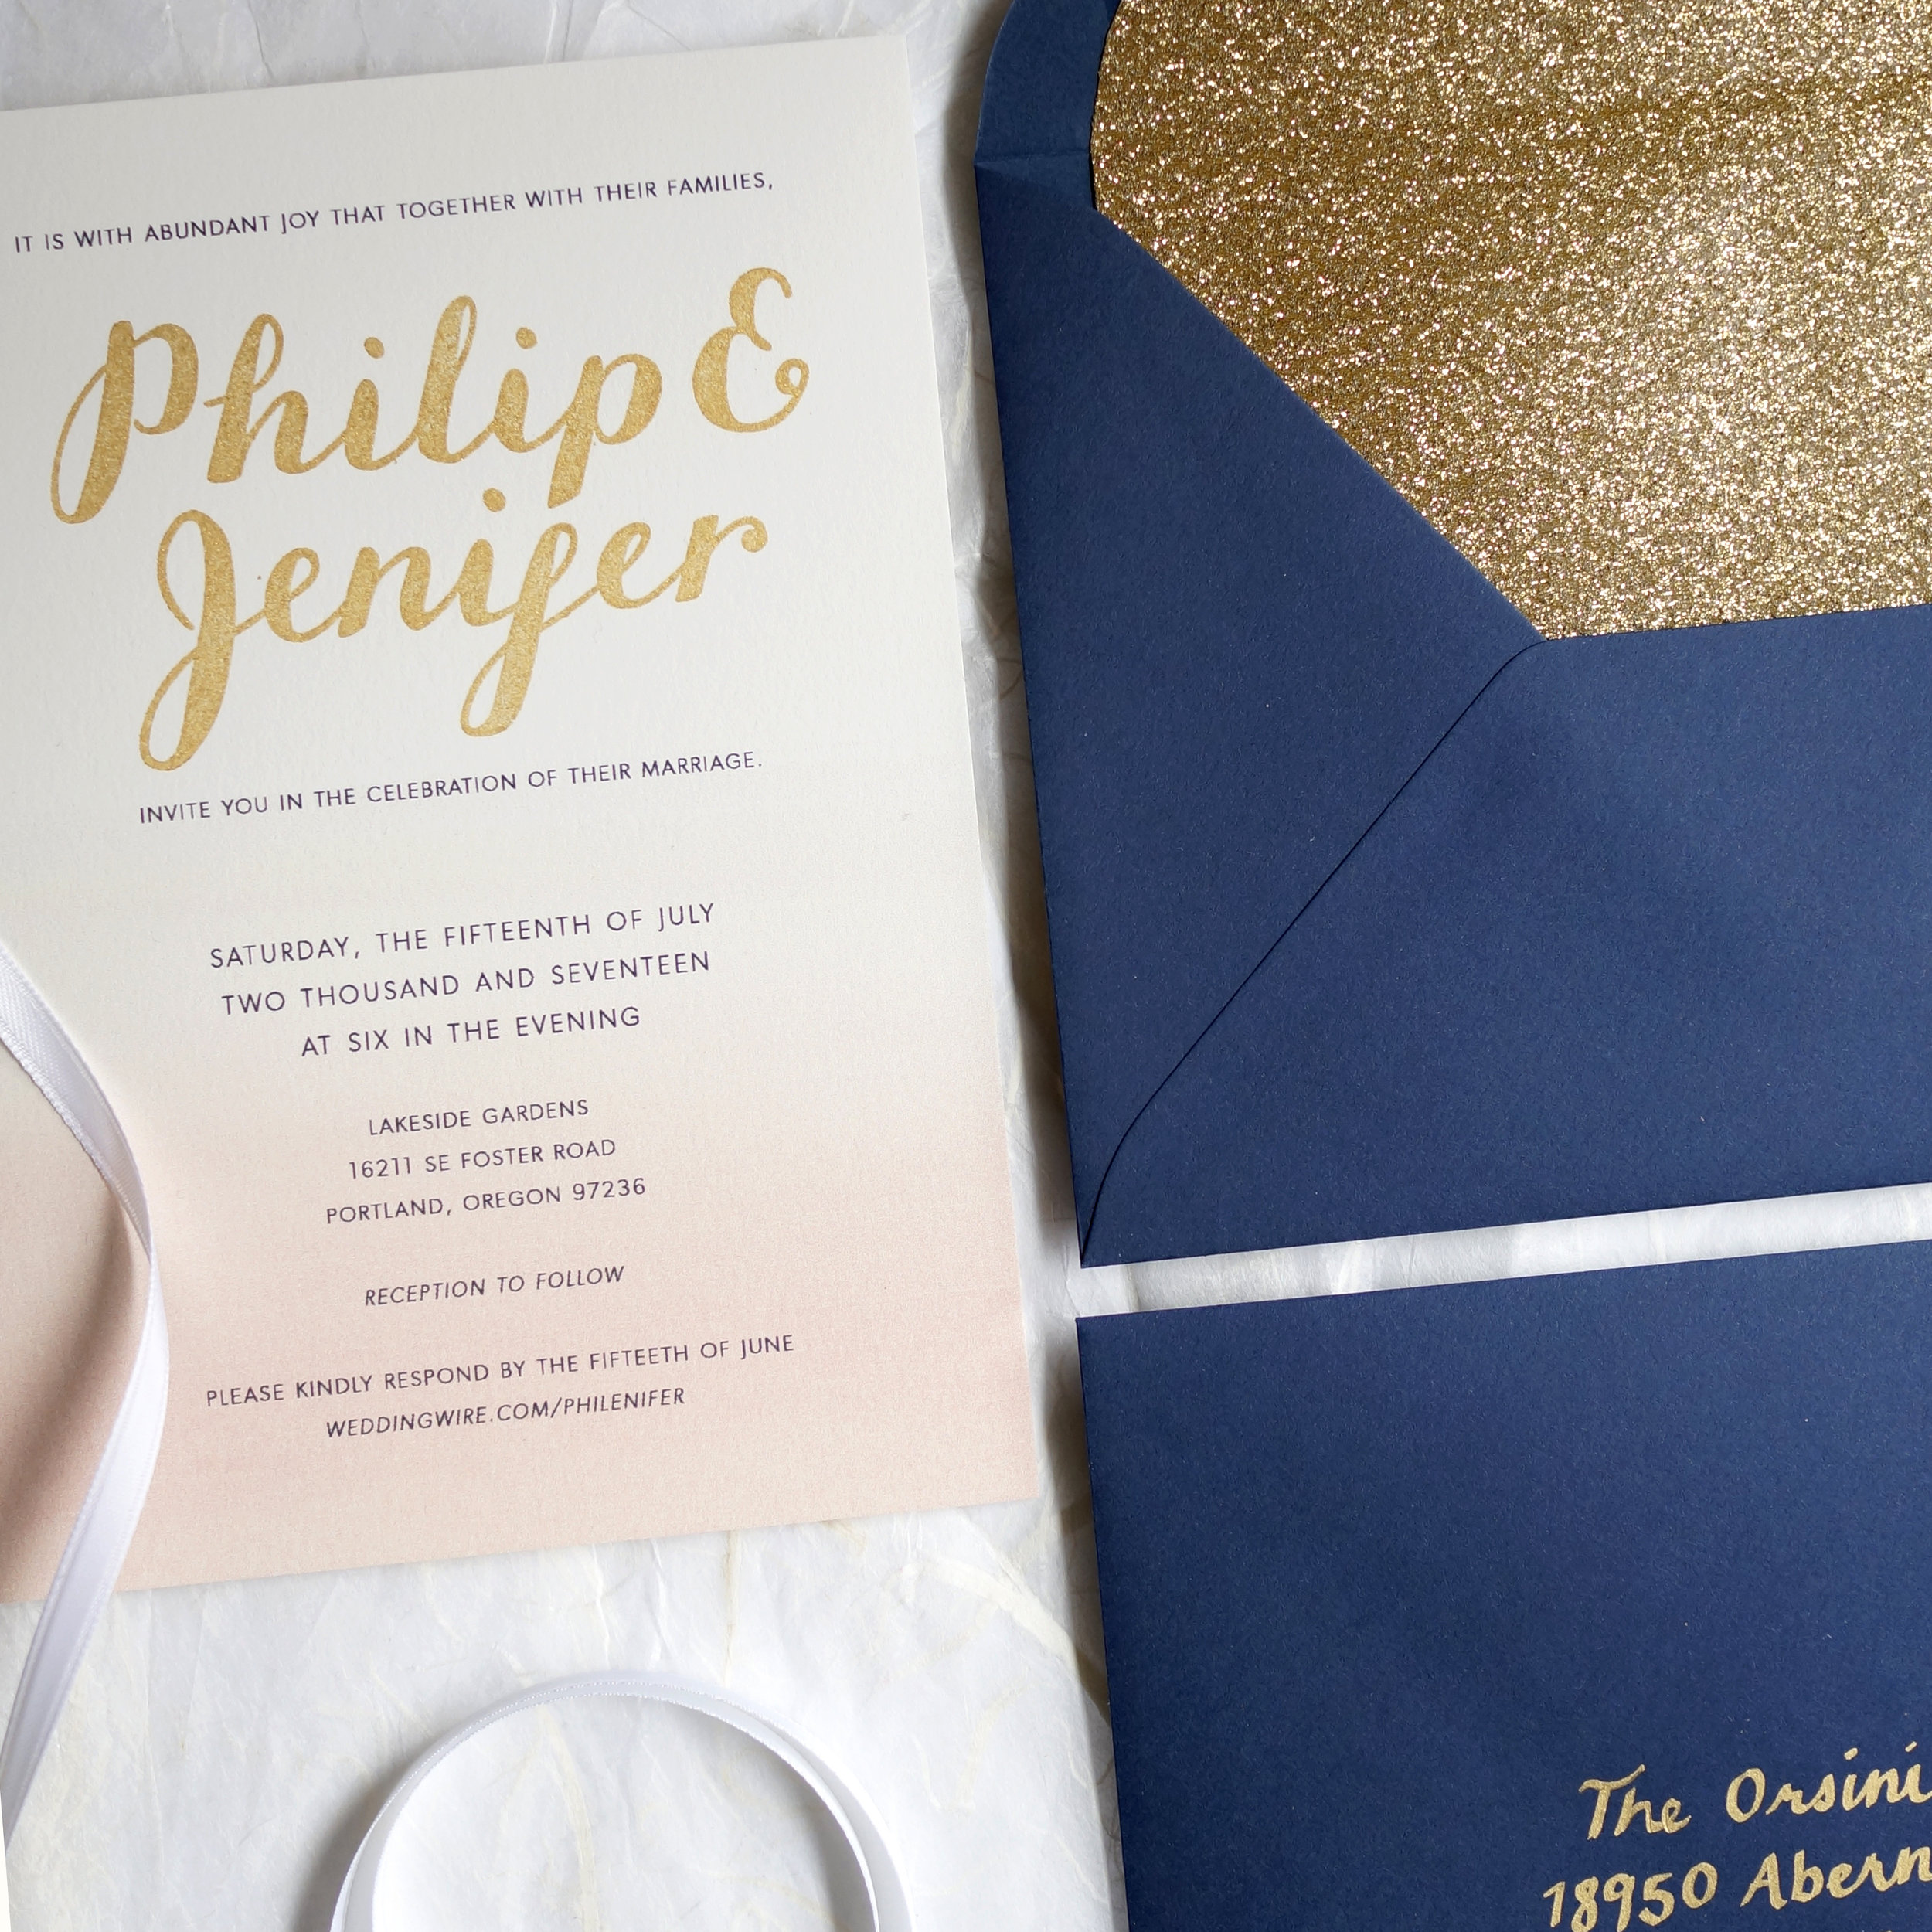 Philip & Jenifer Invite